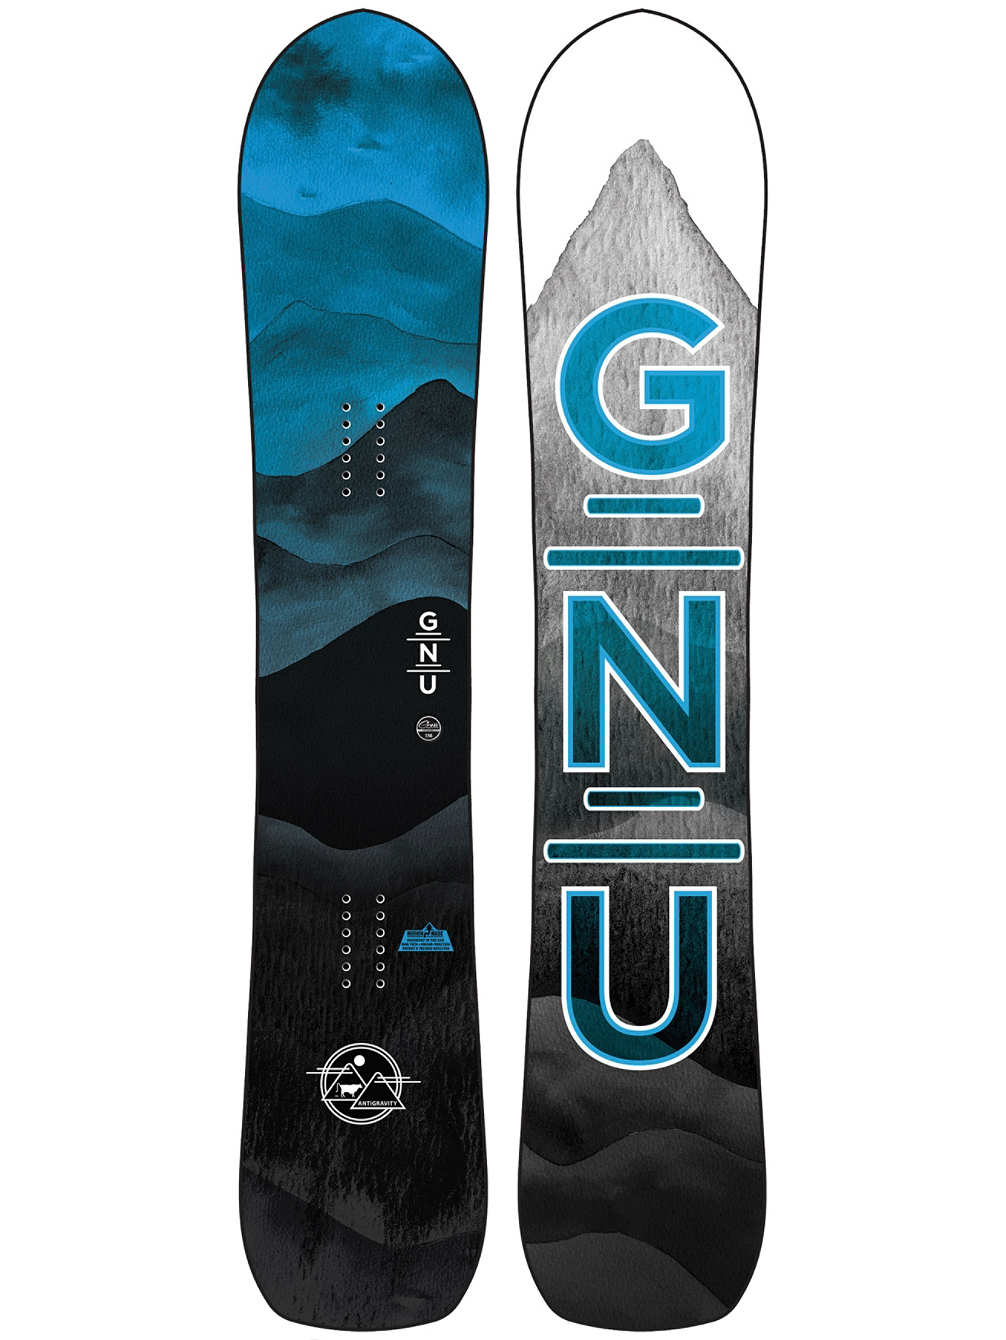 Top Snowboards-Gnu-Antigravity-C3